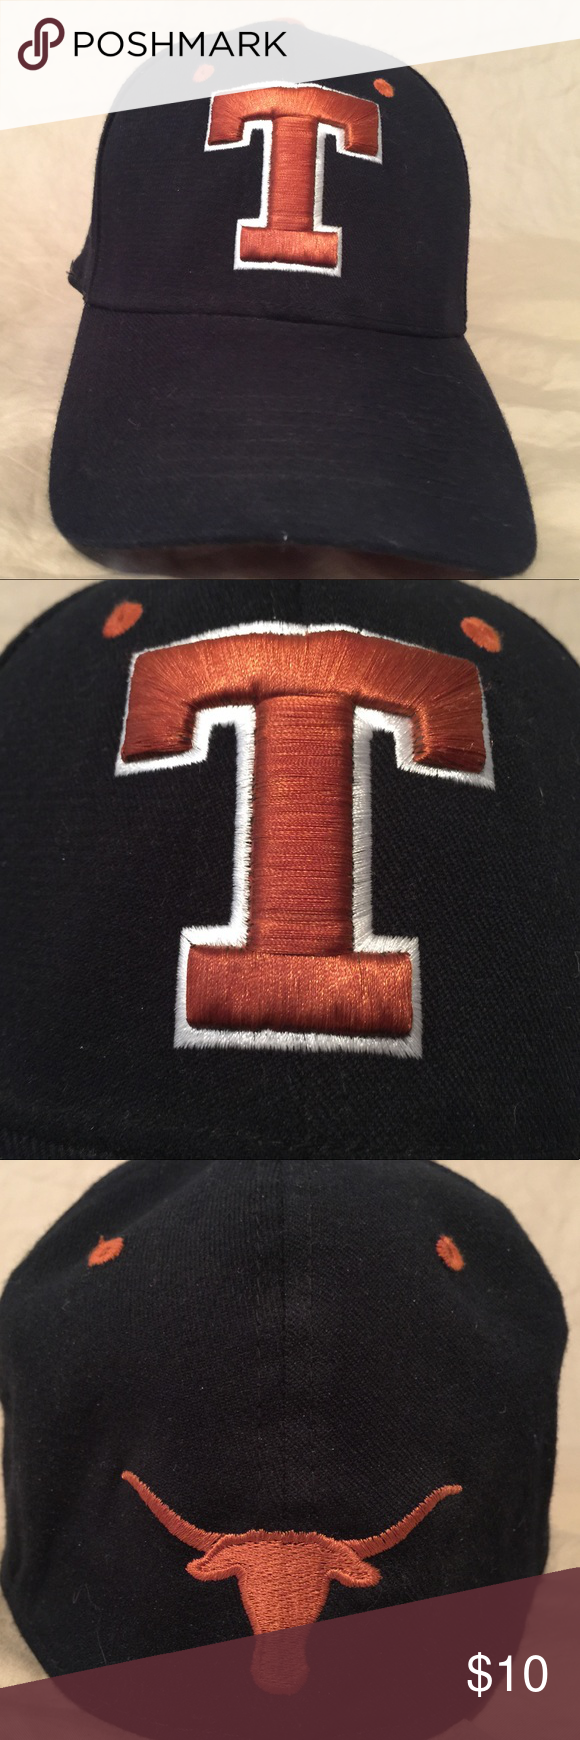 5671456fecf7f Texas Longhorns Ball Cap Black in color with burnt orange and white  Embroidery. This is